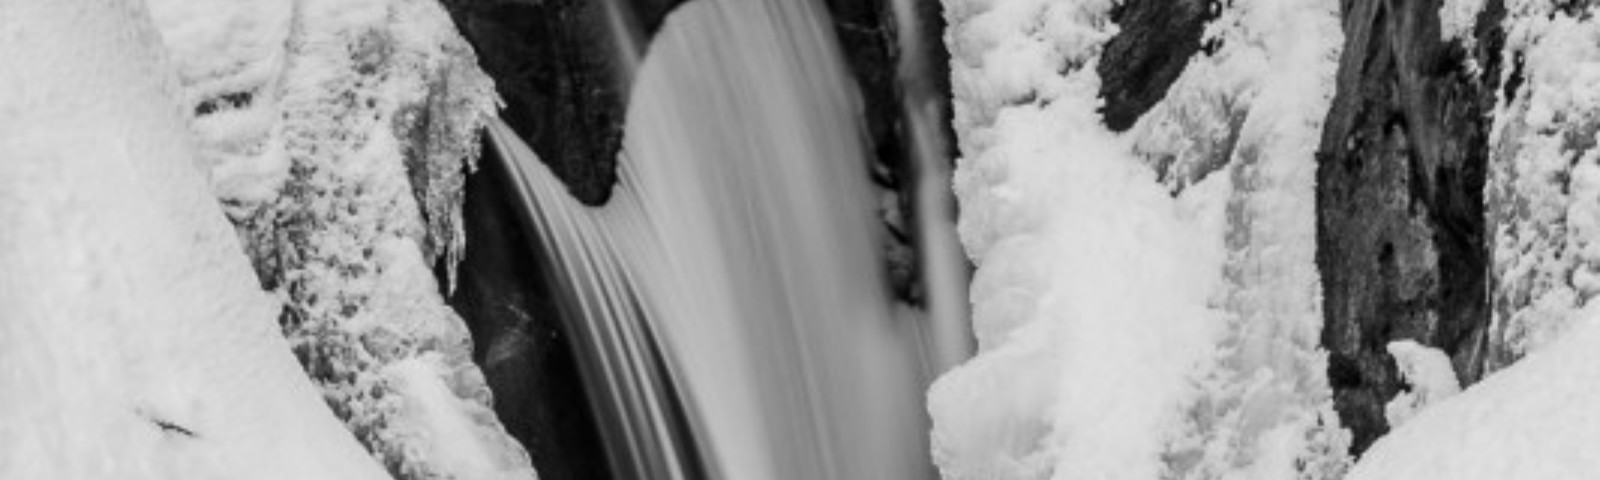 A black and white nature photograph of a snow covered, partially frozen Christine Falls at Mount Rainier National Park, Washington.